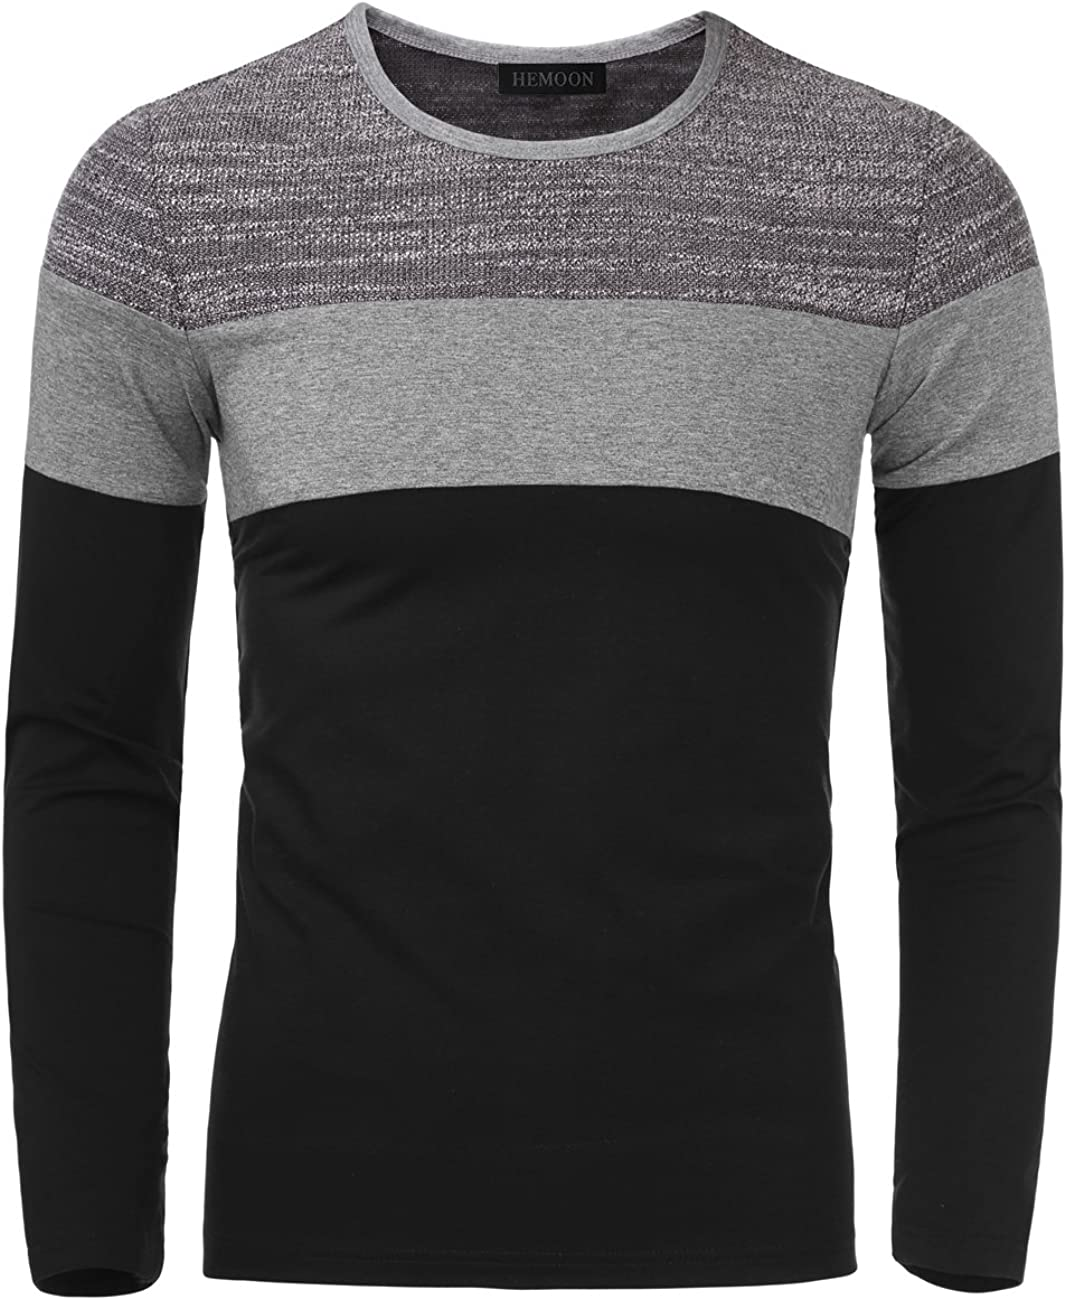 YONGM Men Short Sleeve Slim Fitted Pullover Fashion Pure Color V Collar Tee